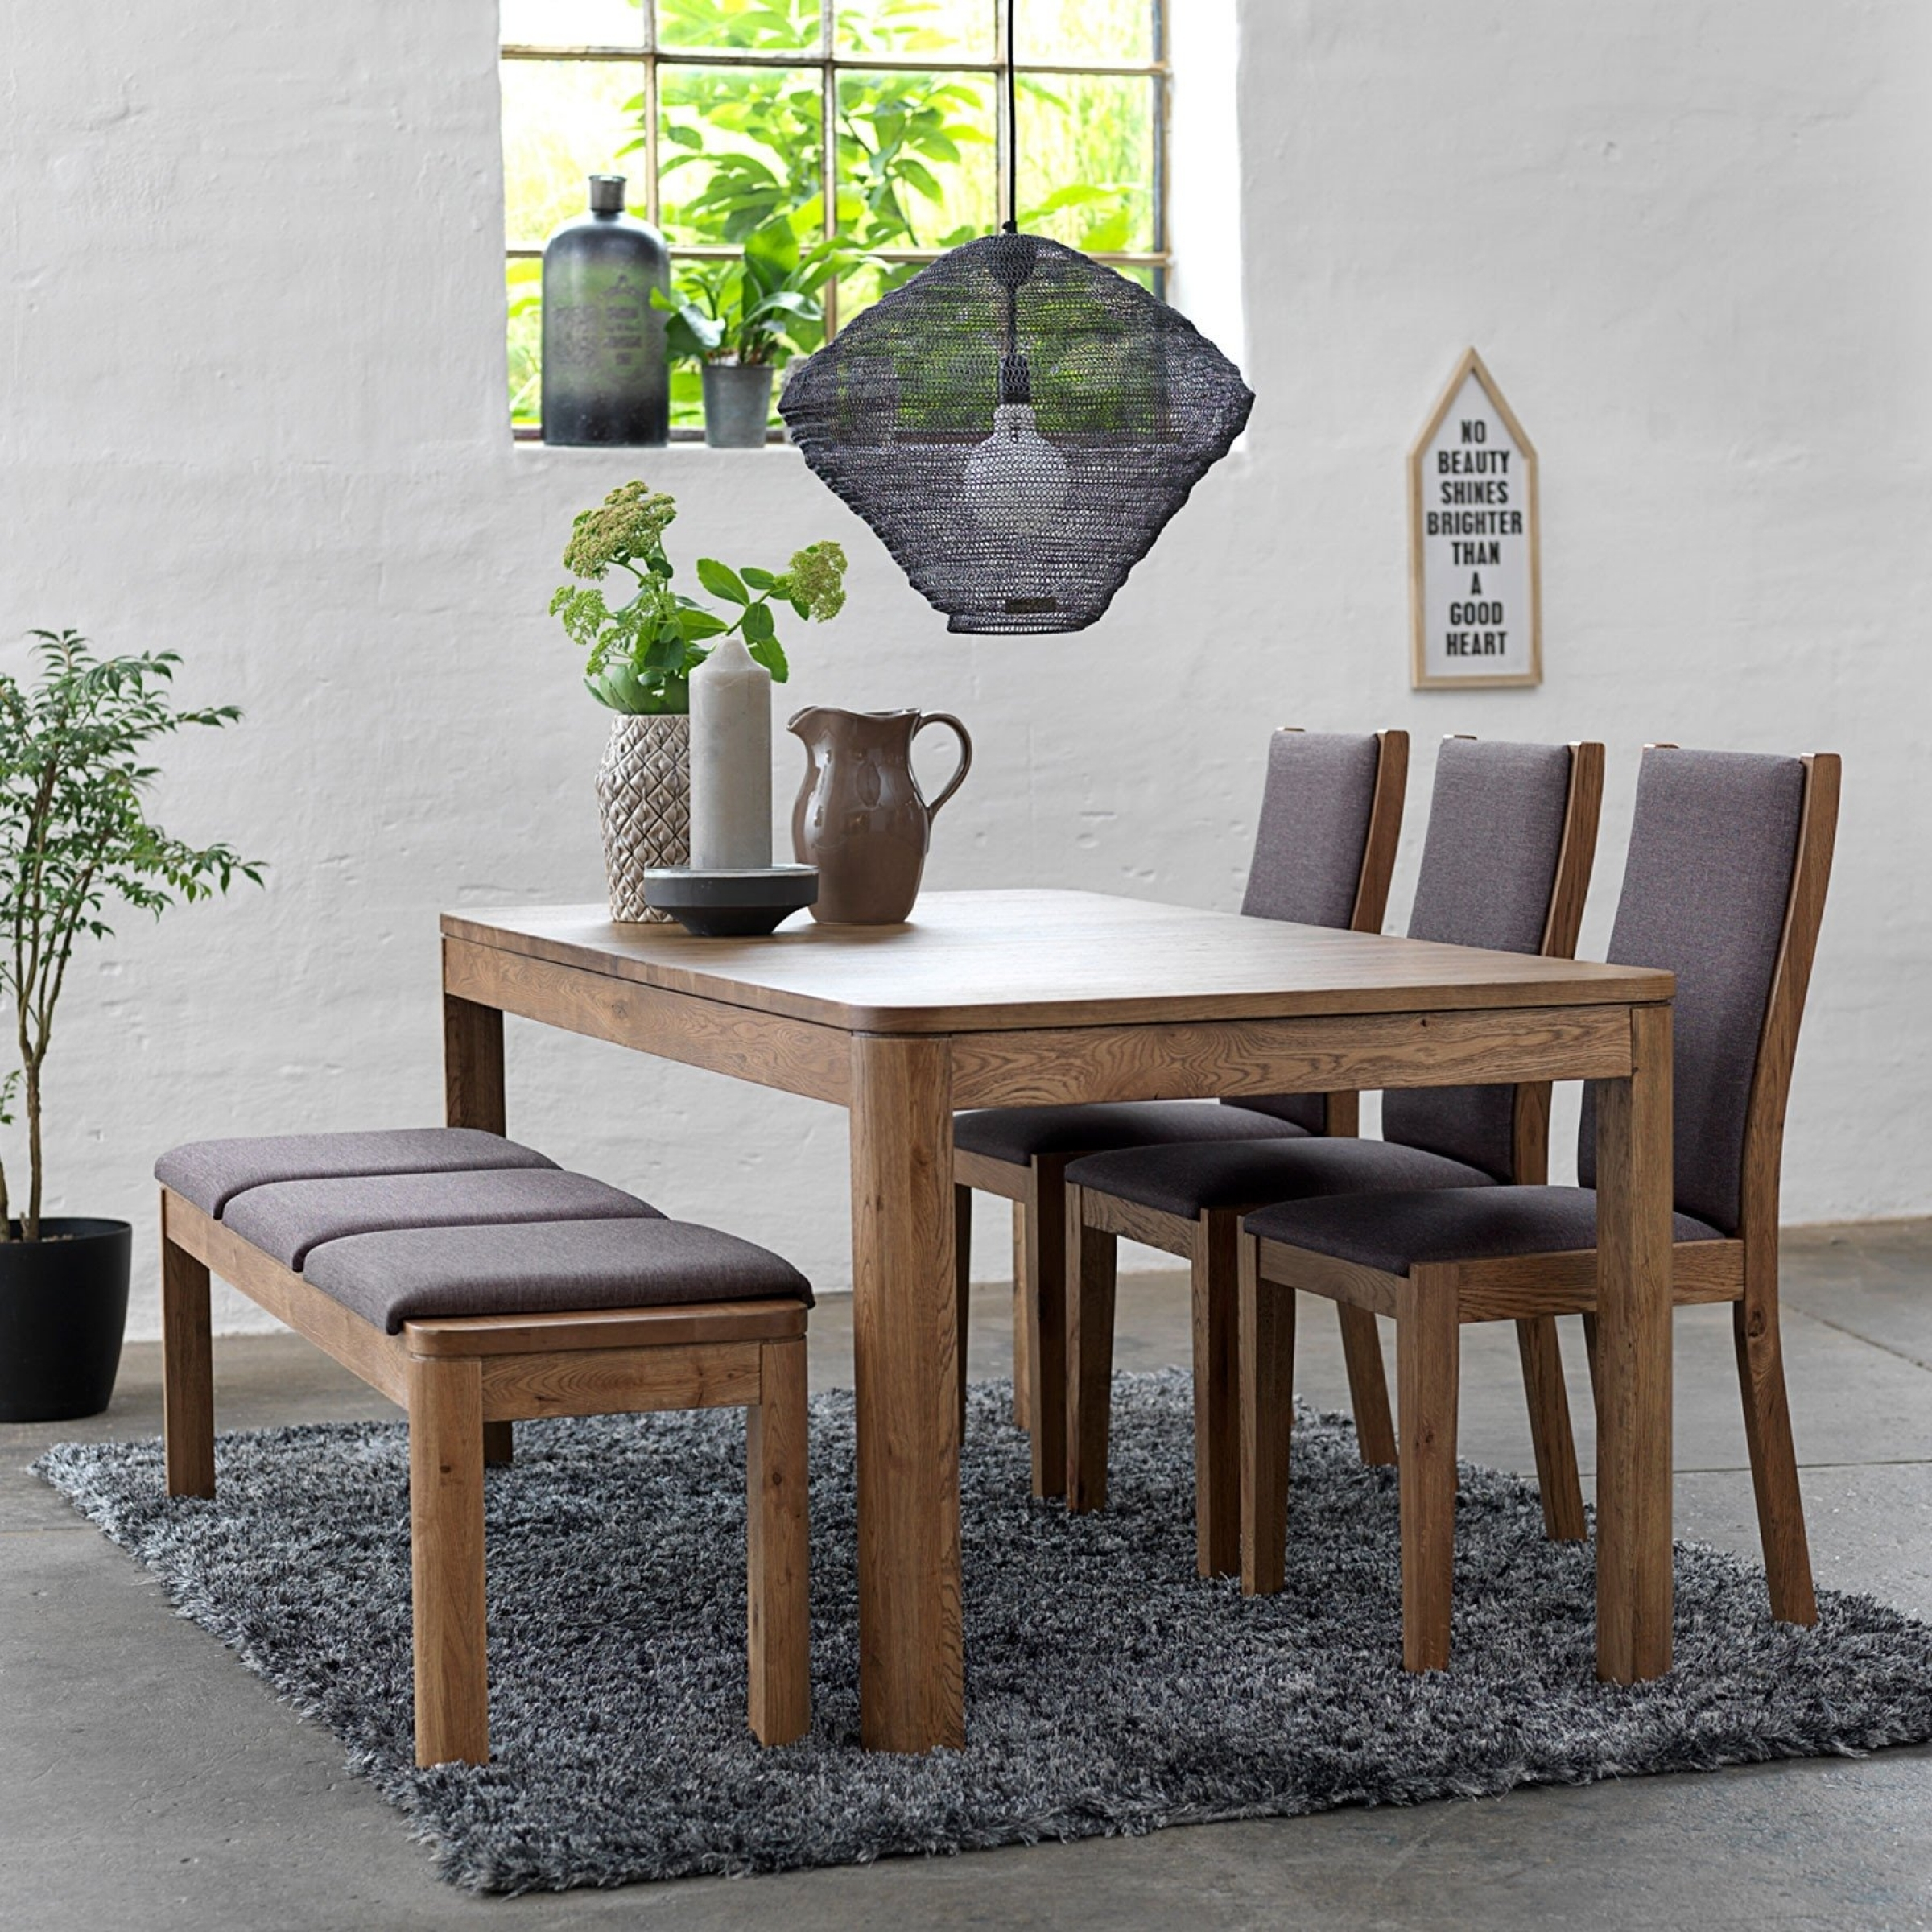 Dining Room Furniture With Bench: Dining Table With Bench